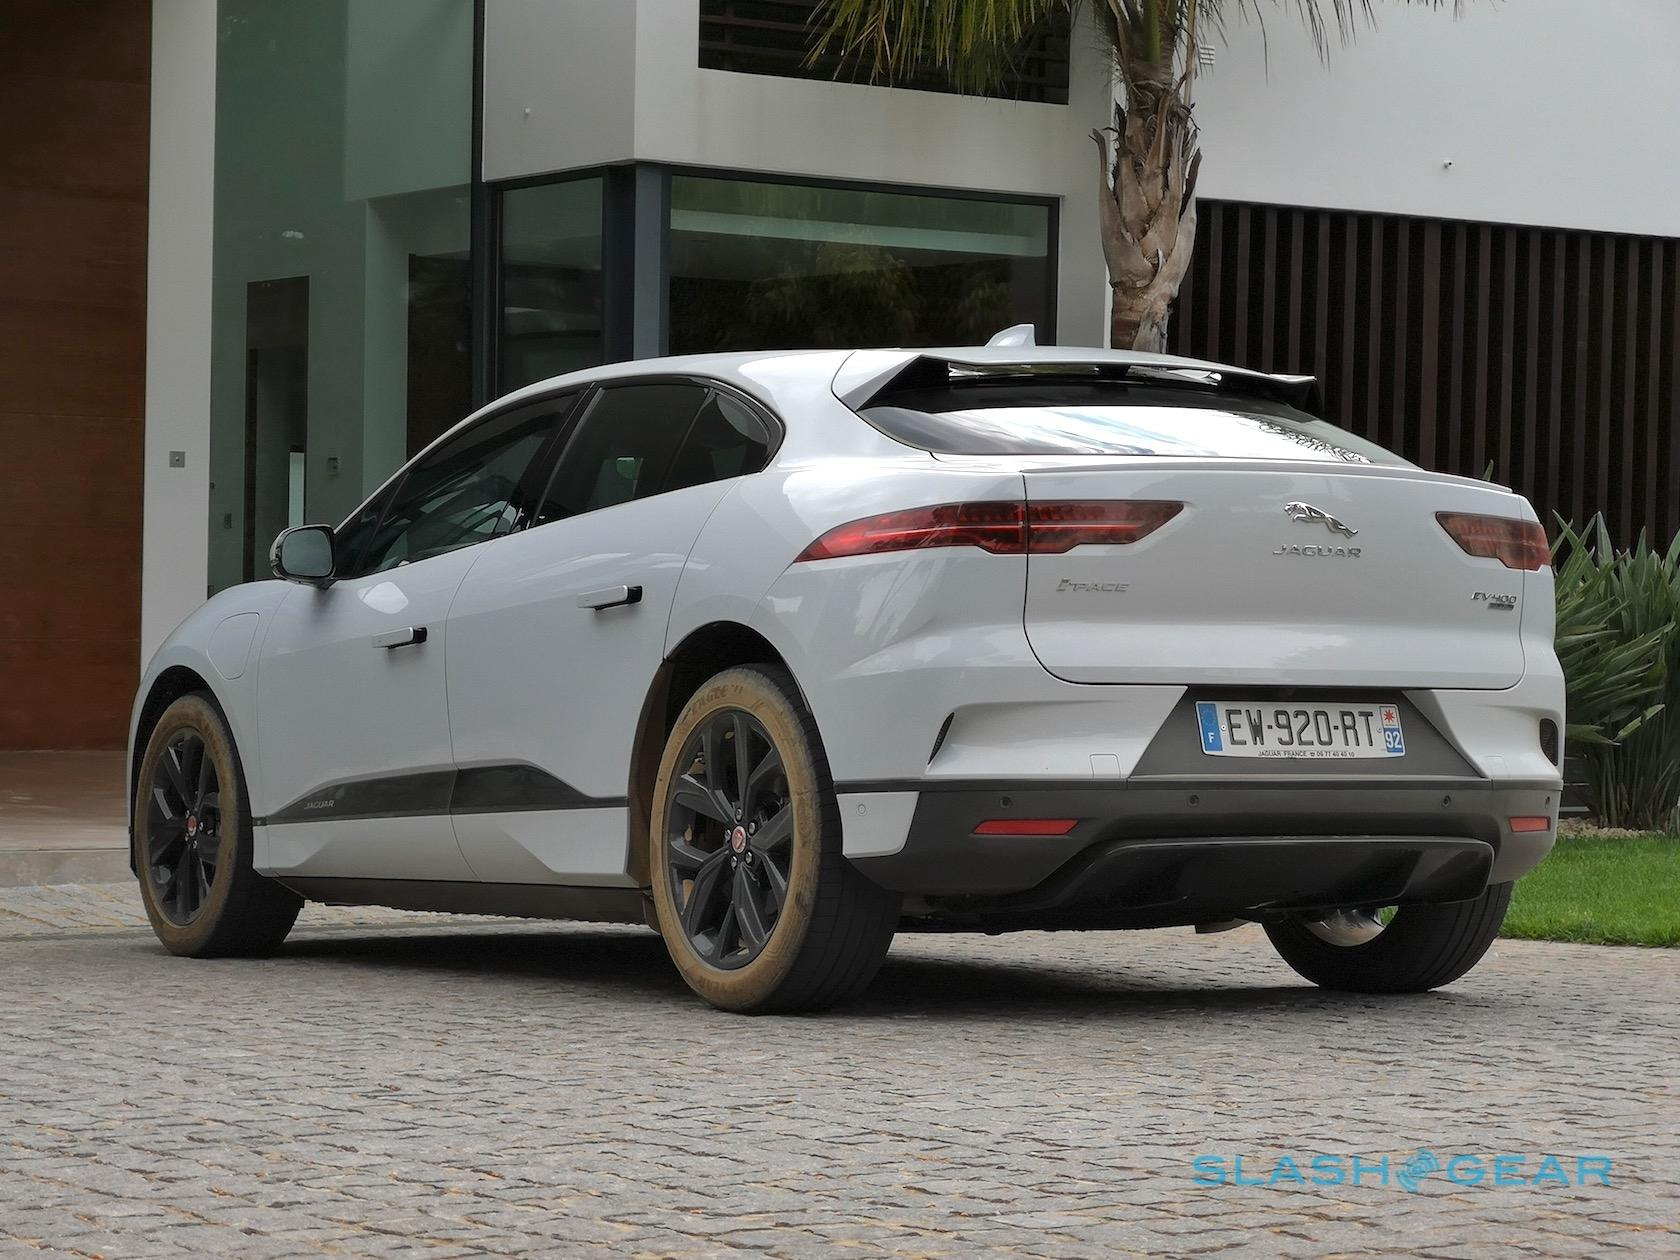 It Is I Say With No Exaggeration A Changer For The Luxury Electric Vehicle Segment That Jaguar Has Nailed In Way S So Pitch Perfect On Its